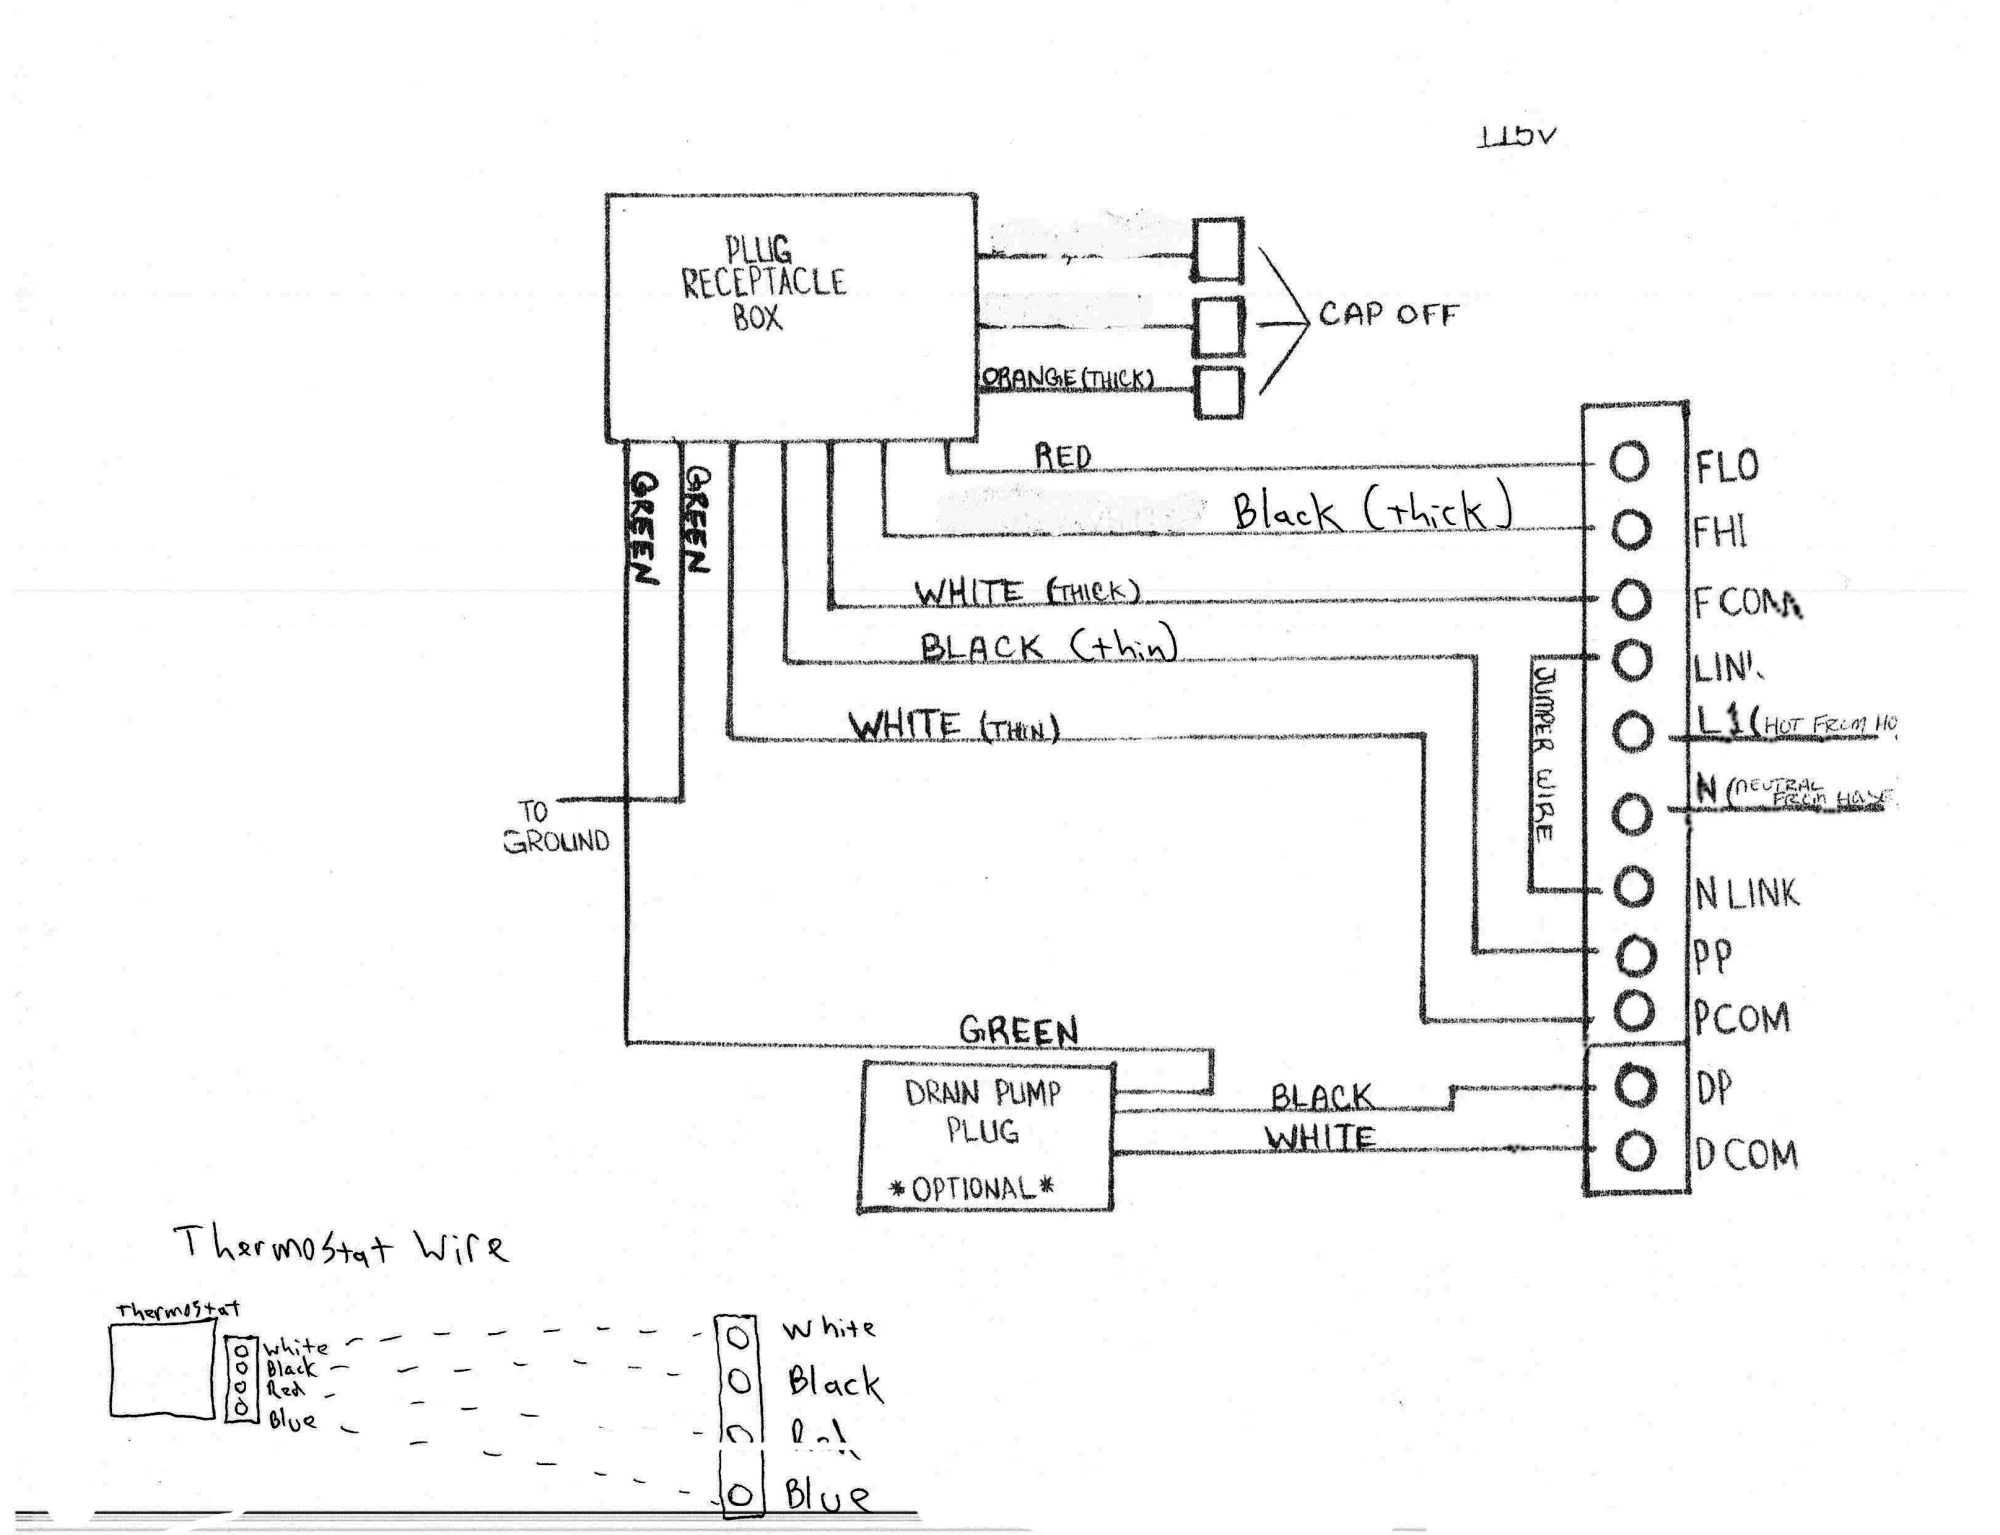 hight resolution of wiring schematic for 115 volt